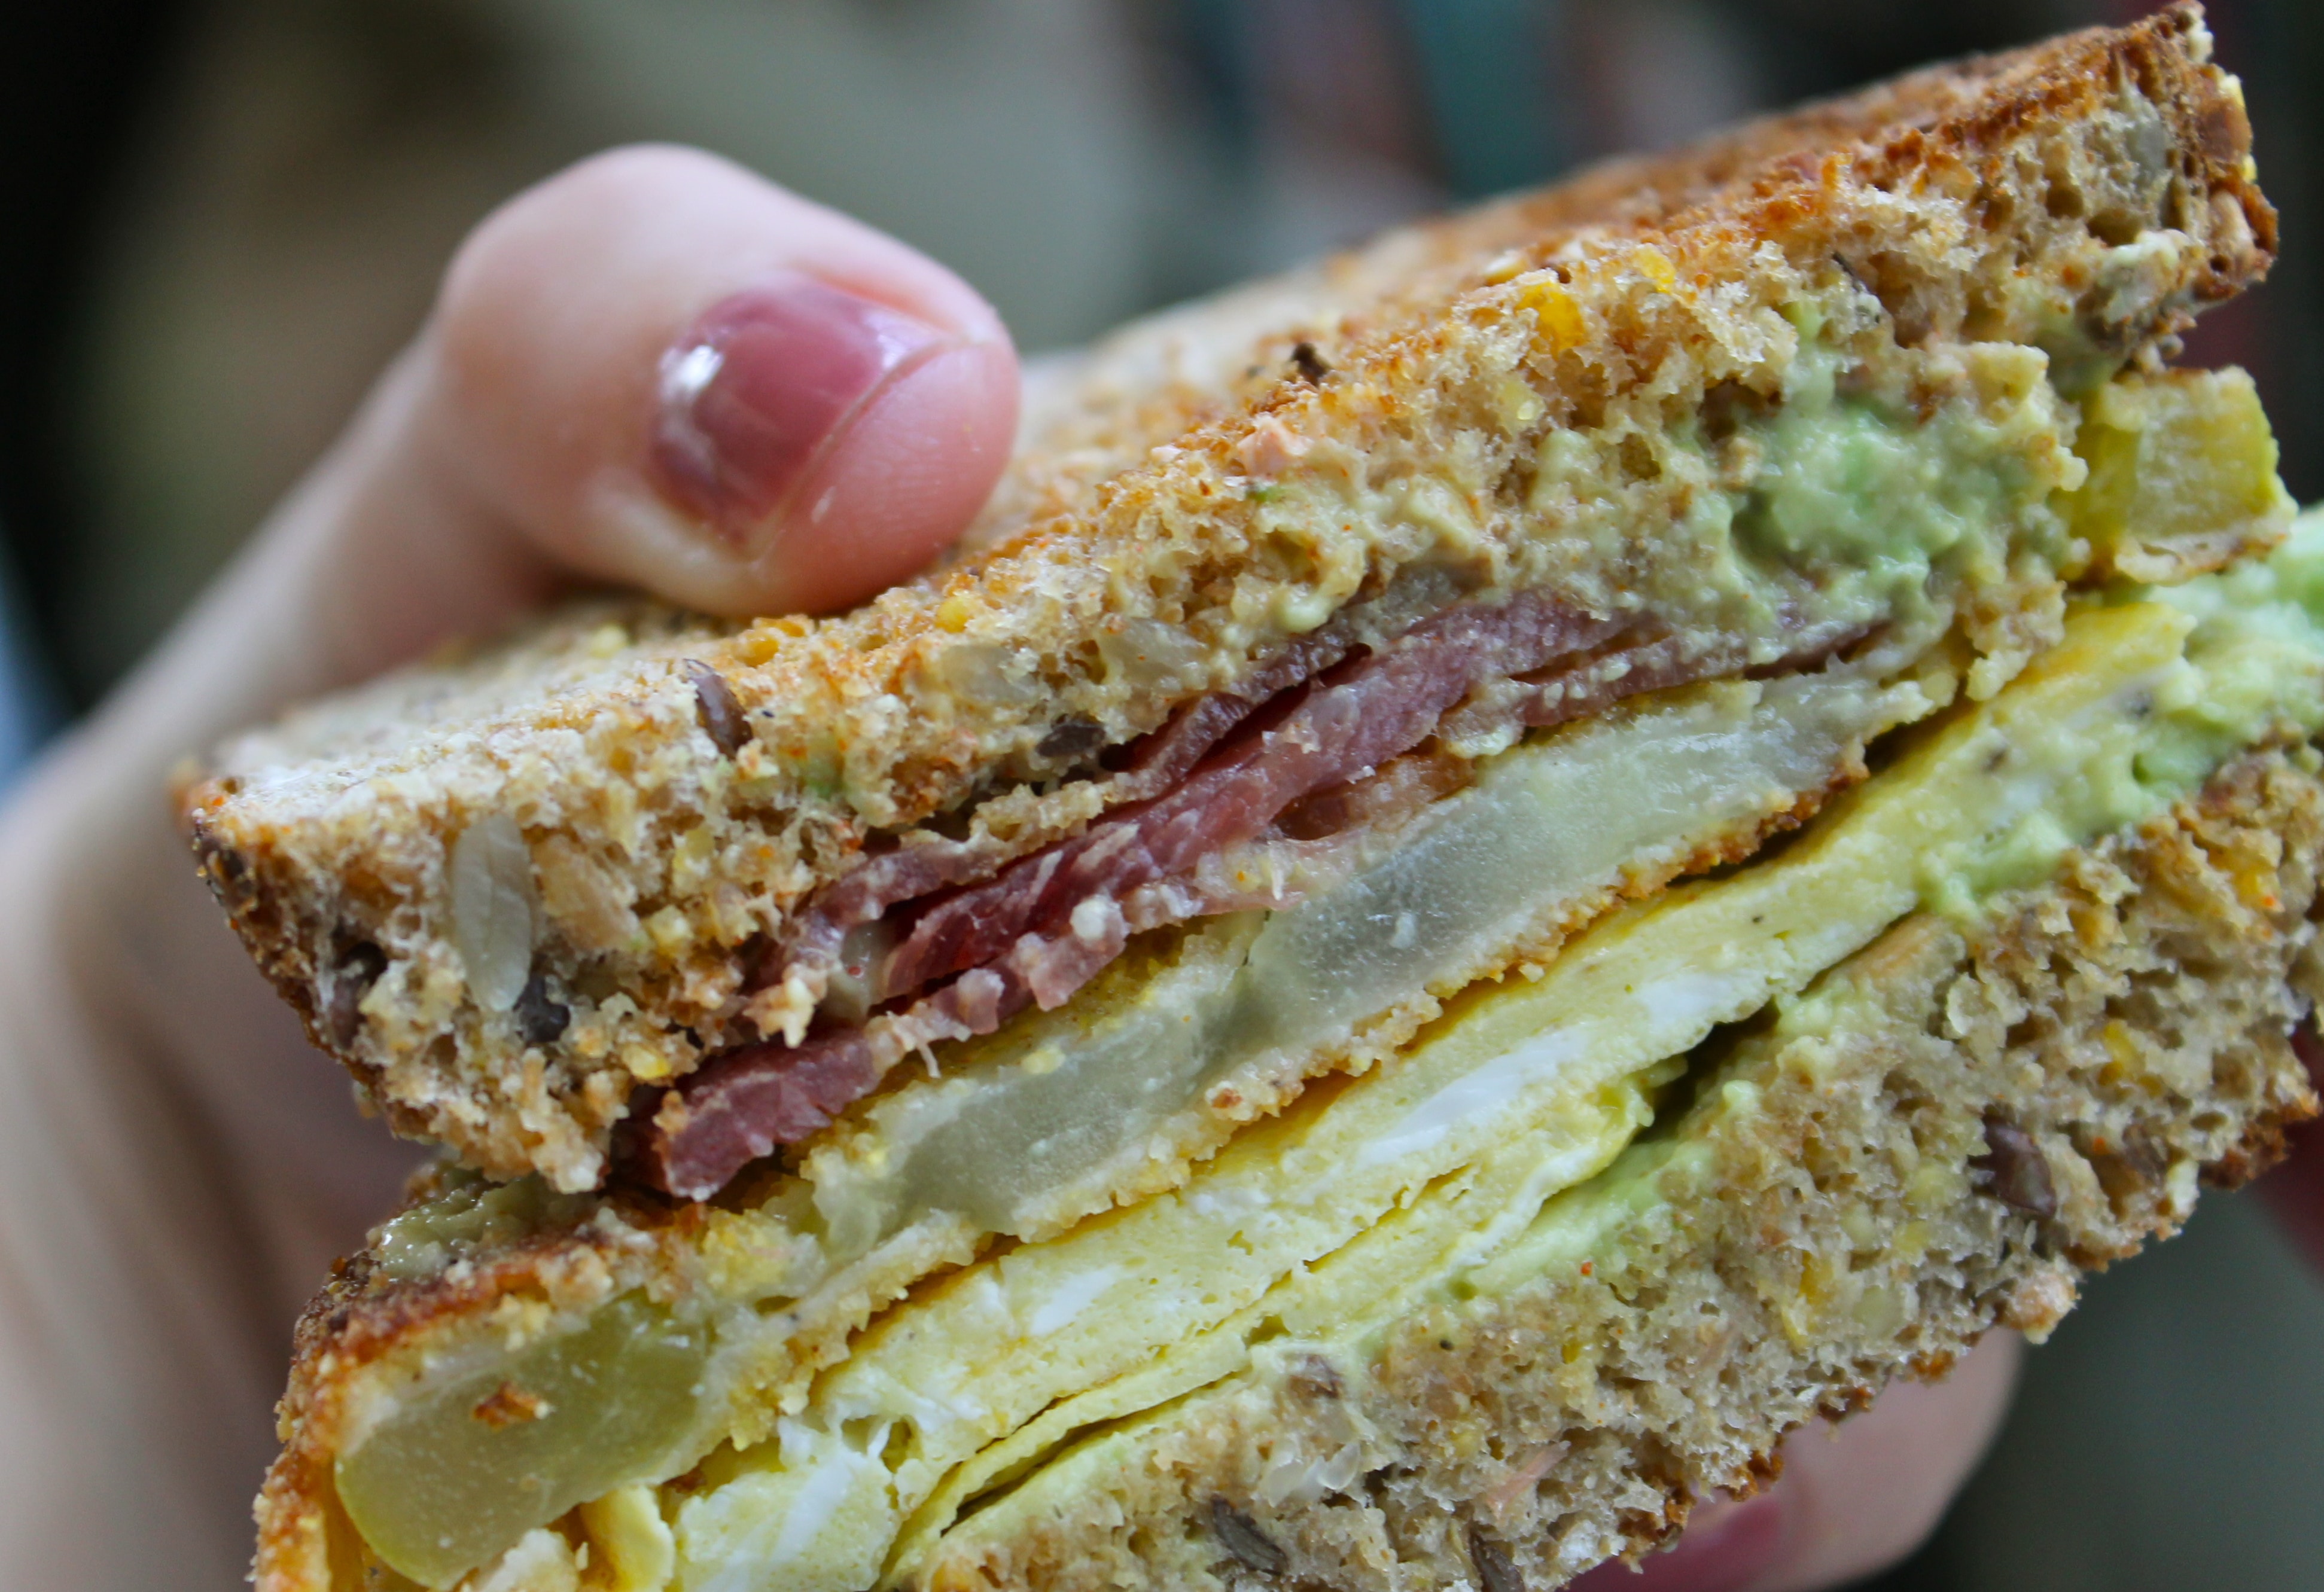 Fried Green Tomato Egg Sandwiches with Applewood Smoked Bacon, Avocado, Cheddar, and Spicy Aioli